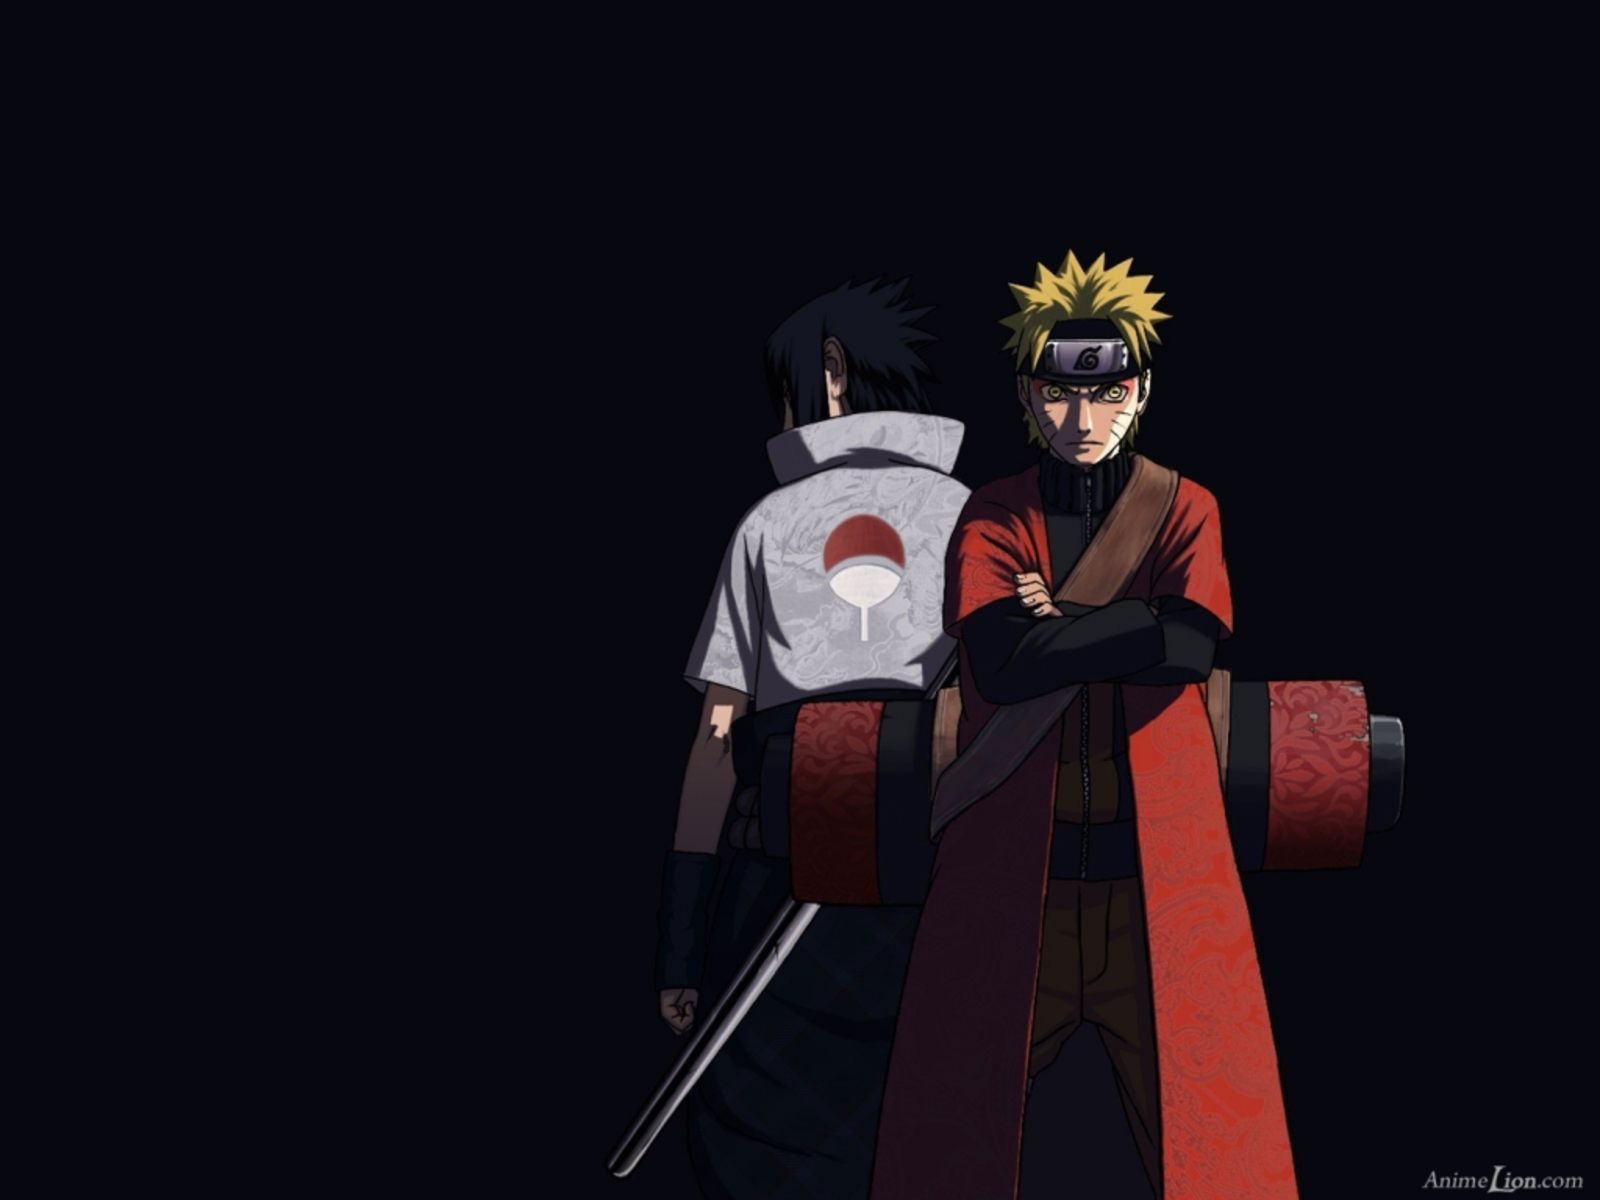 Naruto Uzumaki Shippuden Wallpapers Wallpaper Cave Naruto Wallpaper Wallpaper Naruto Shippuden Naruto Phone Wallpaper